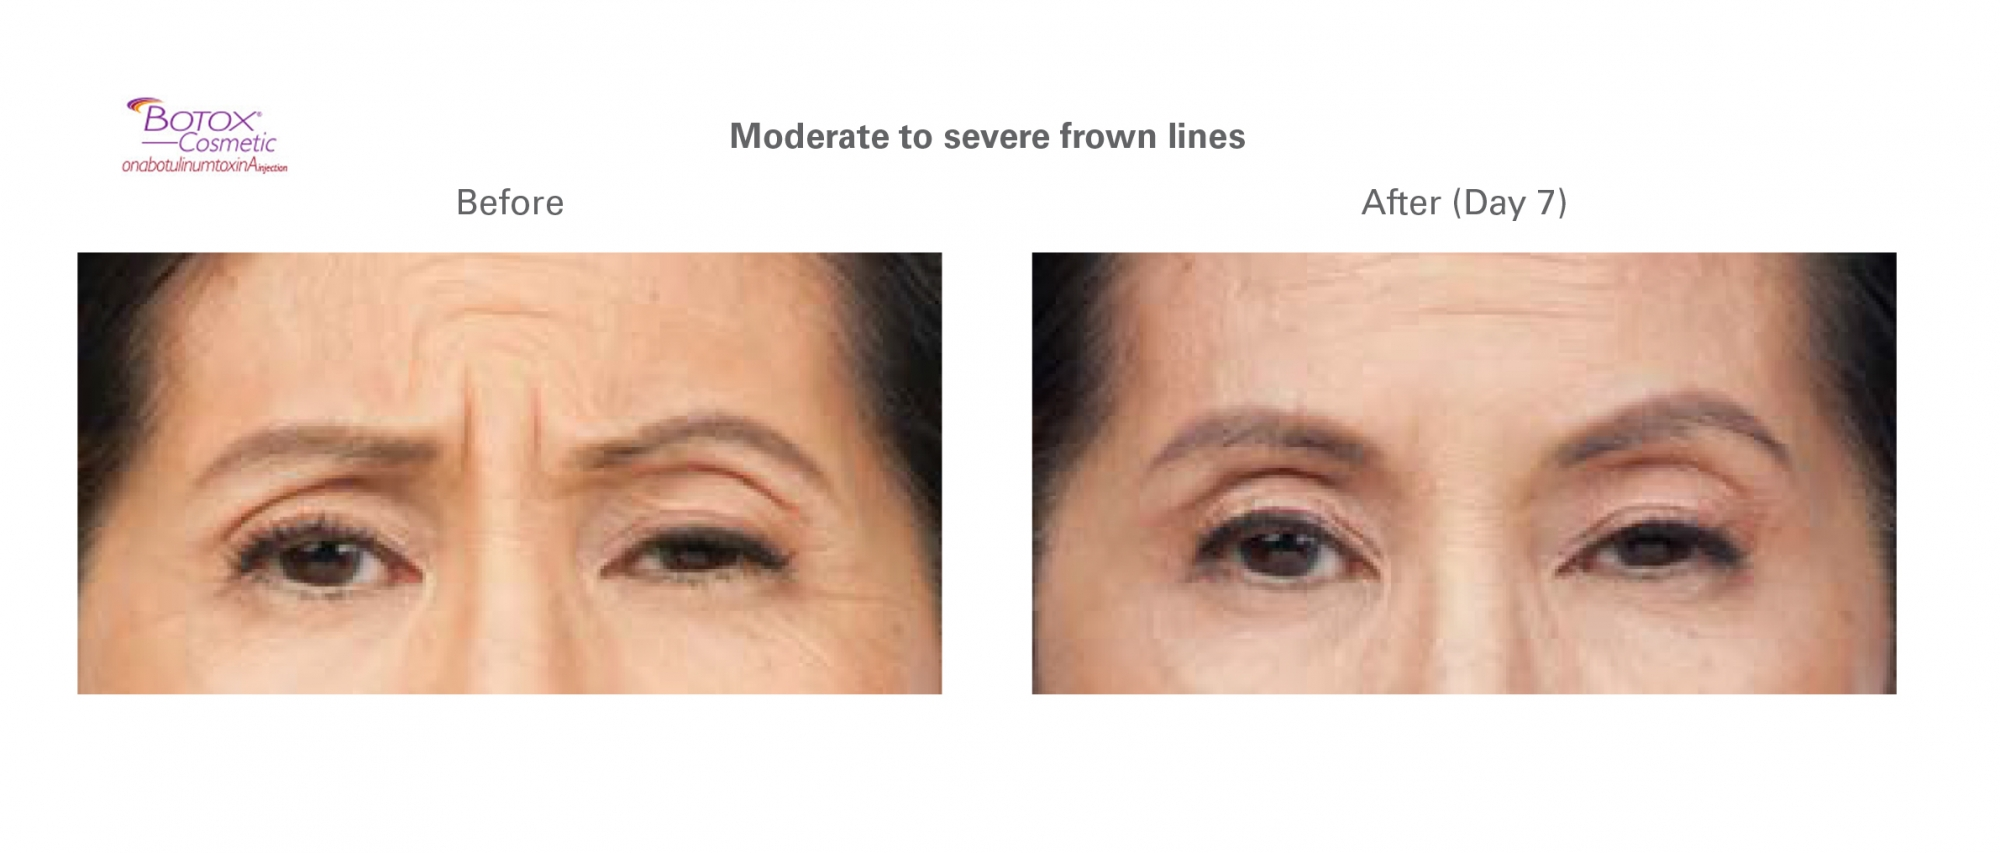 before and after results for Botox treatment of the brow